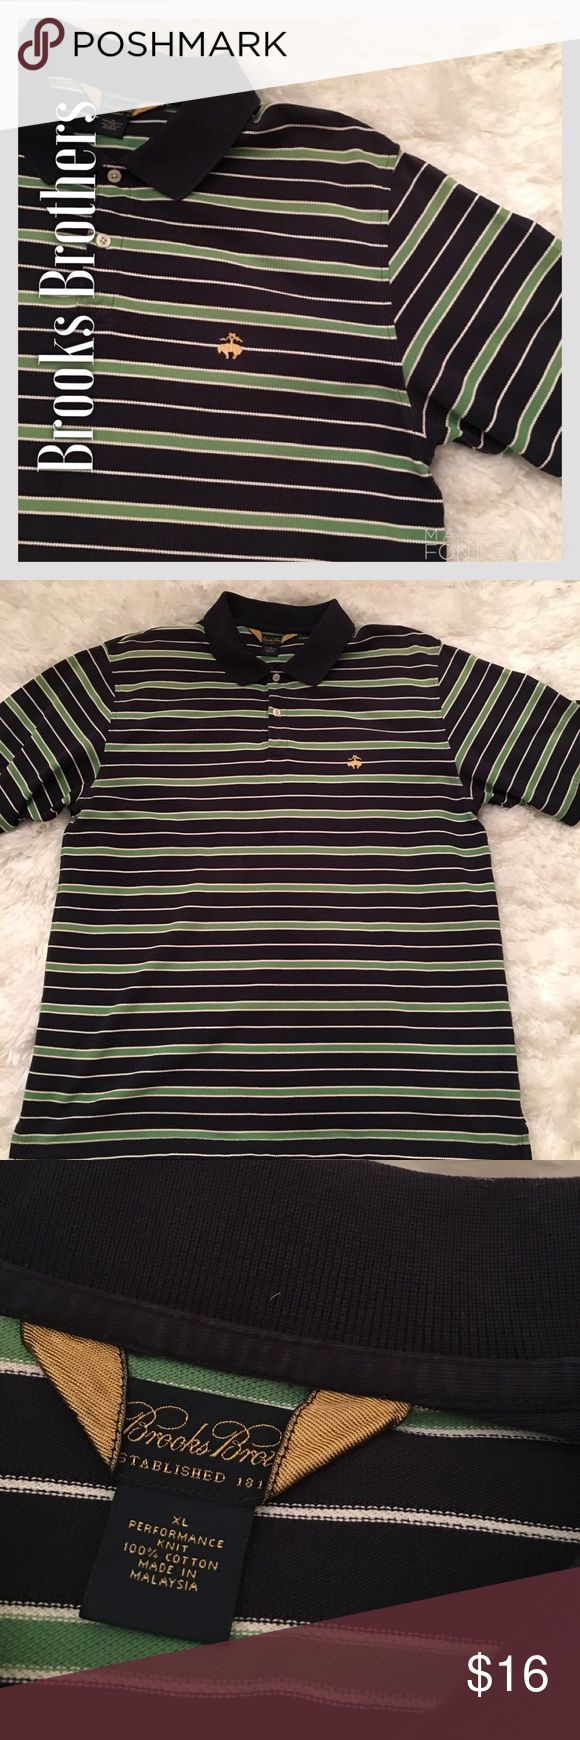 Brooks Brothers Blue & Green Striped Polo Shirt Brooks Brothers Blue & Green Striped Polo Shirt. Great condition. No stains or fading. One tiny wear at top button area that can't be seen at all when buttoned and barely seen when not. Price reflects this worn area. Brooks Brothers Shirts Polos